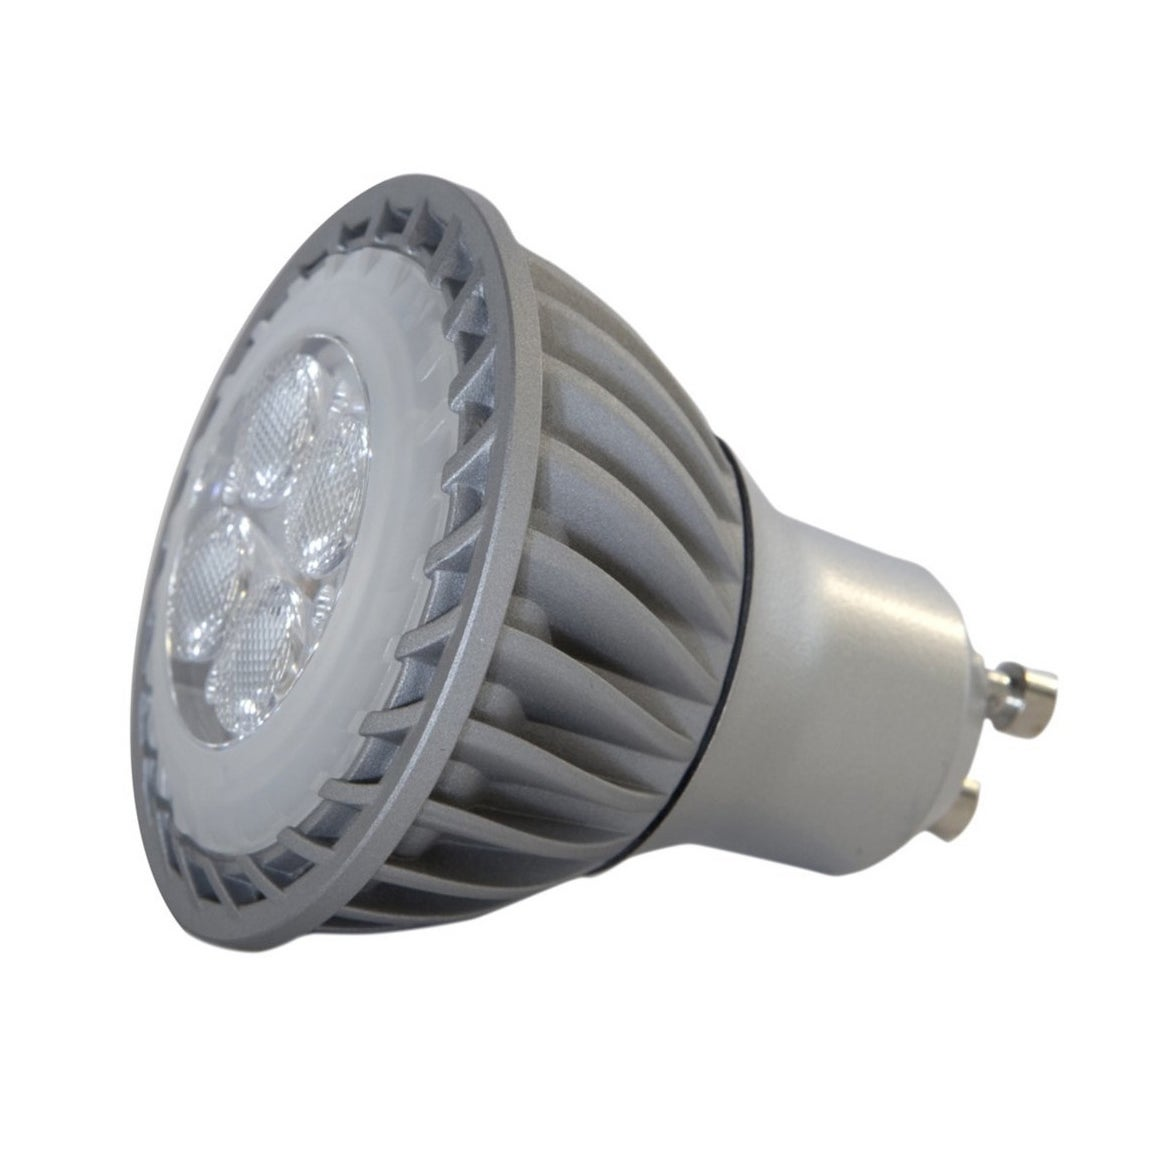 GE LED4DGU10/Nfl Tp 3PK, Grey (Glass)